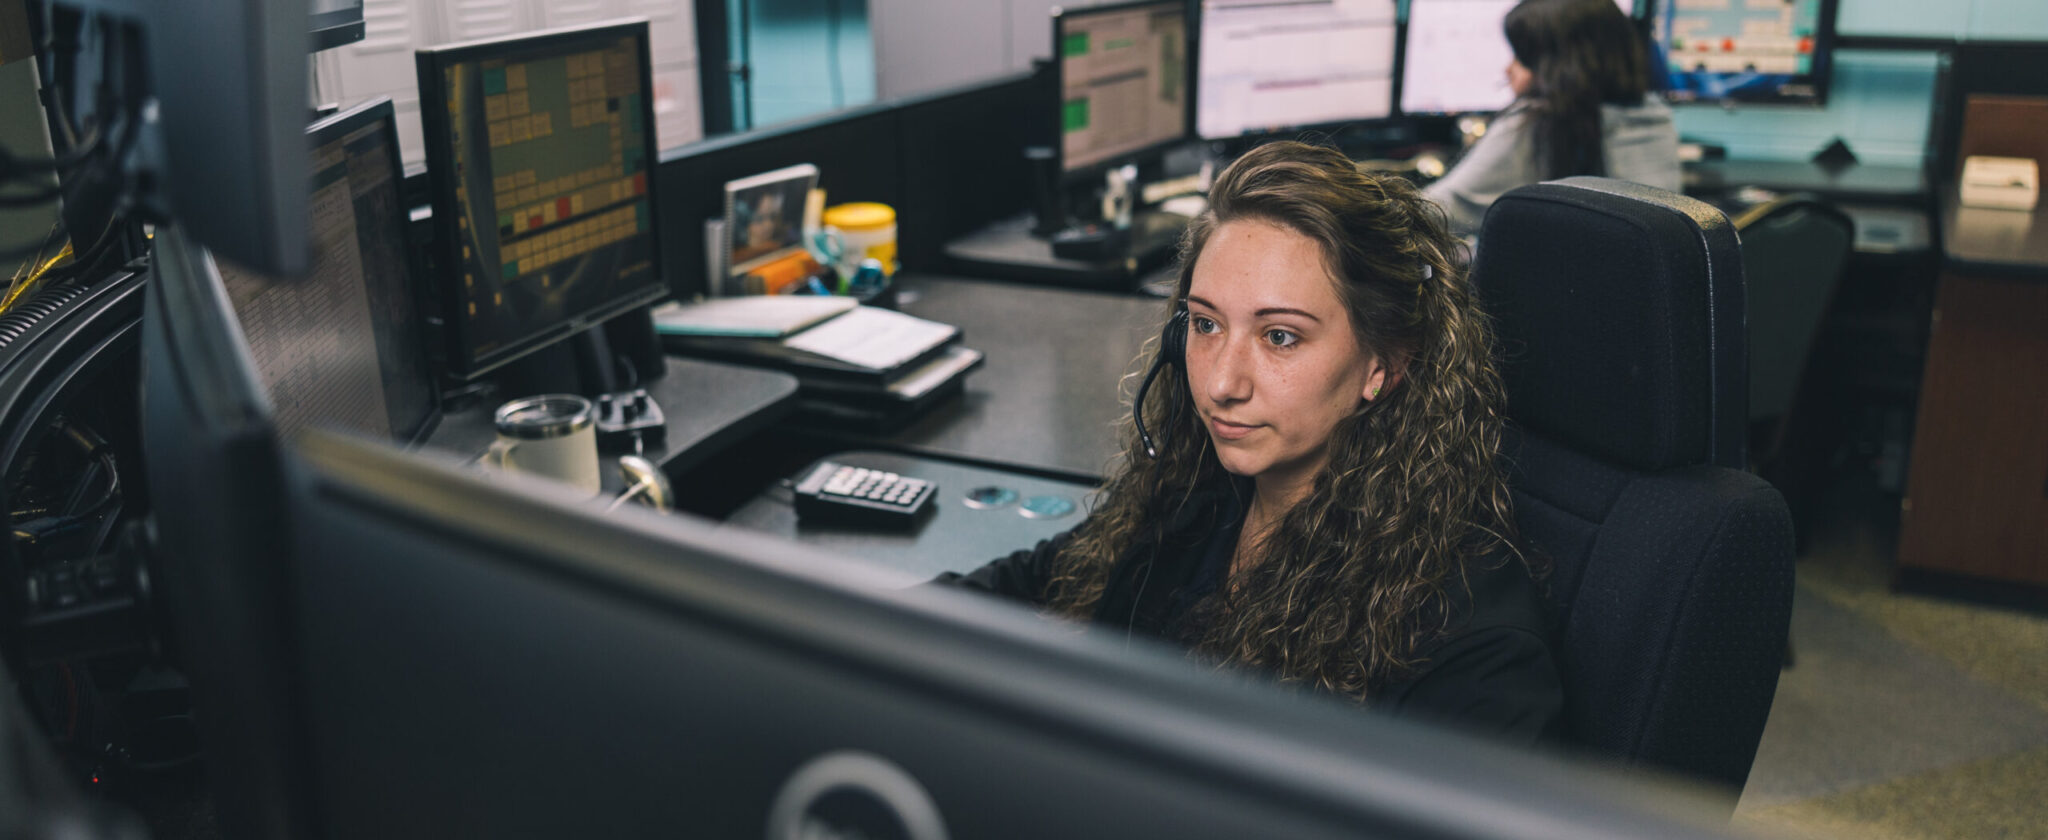 White female dispatcher sitting in front of computer with headset on